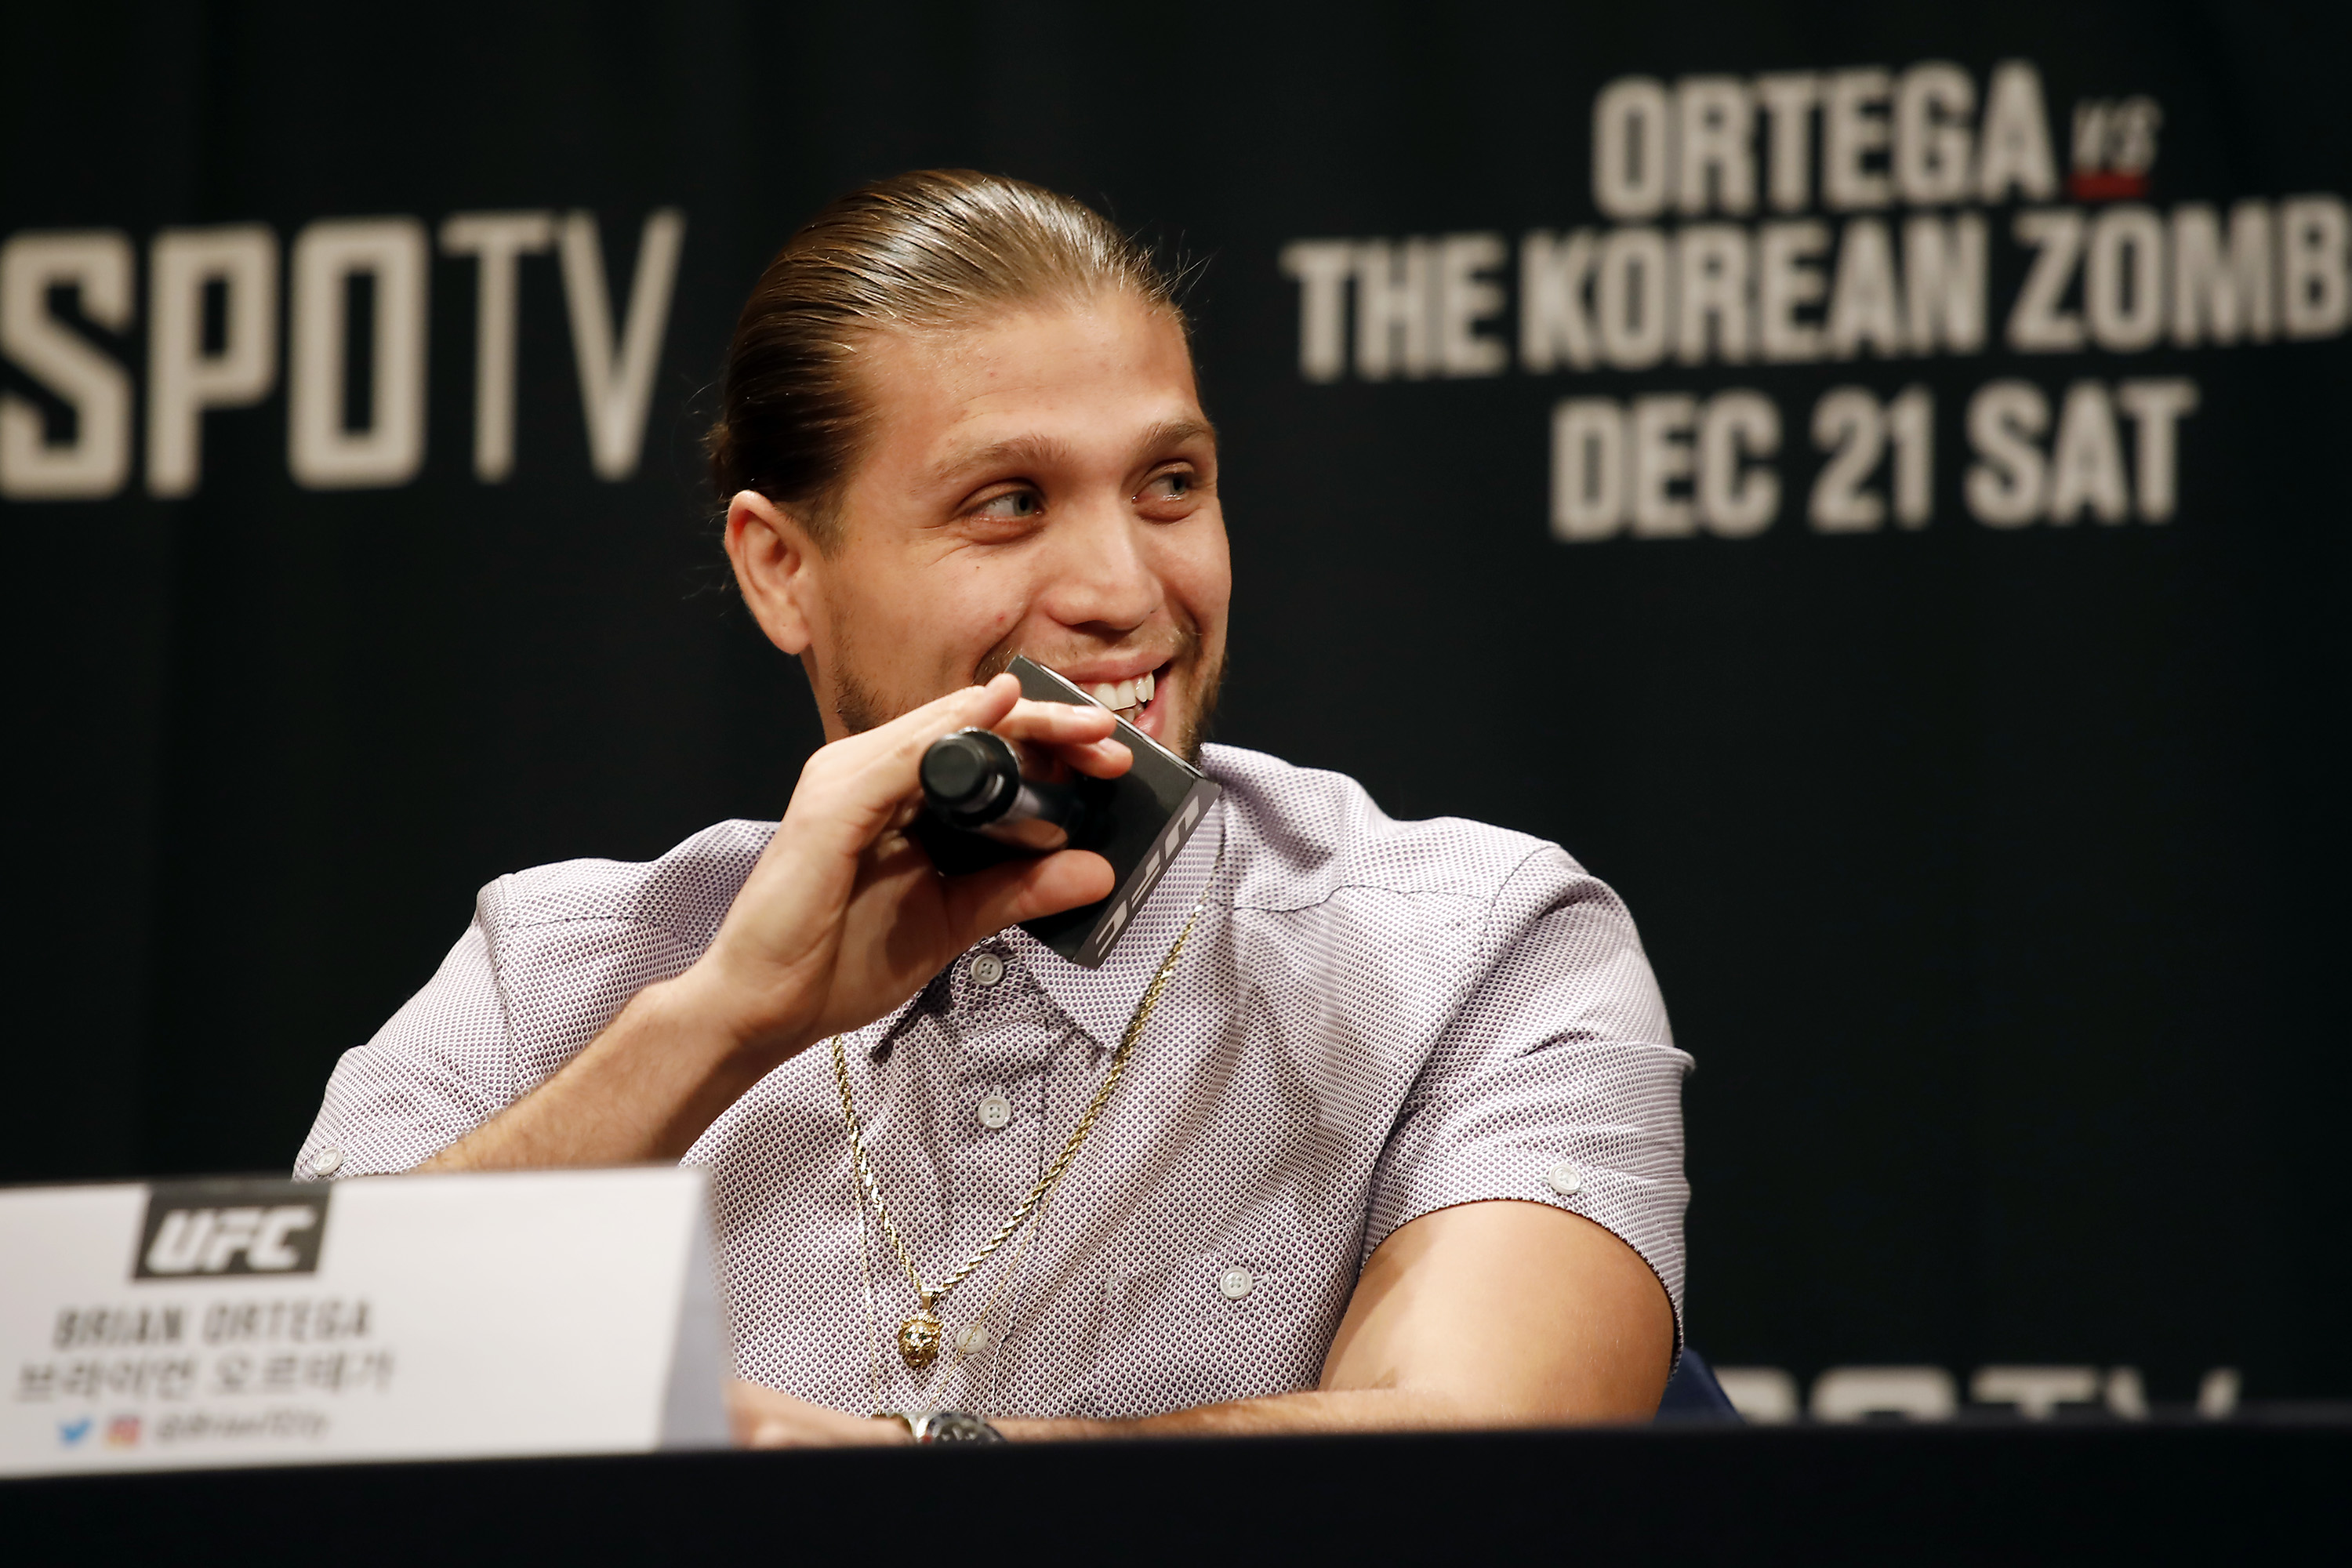 Brian Ortega attends a press conference of an MMA event